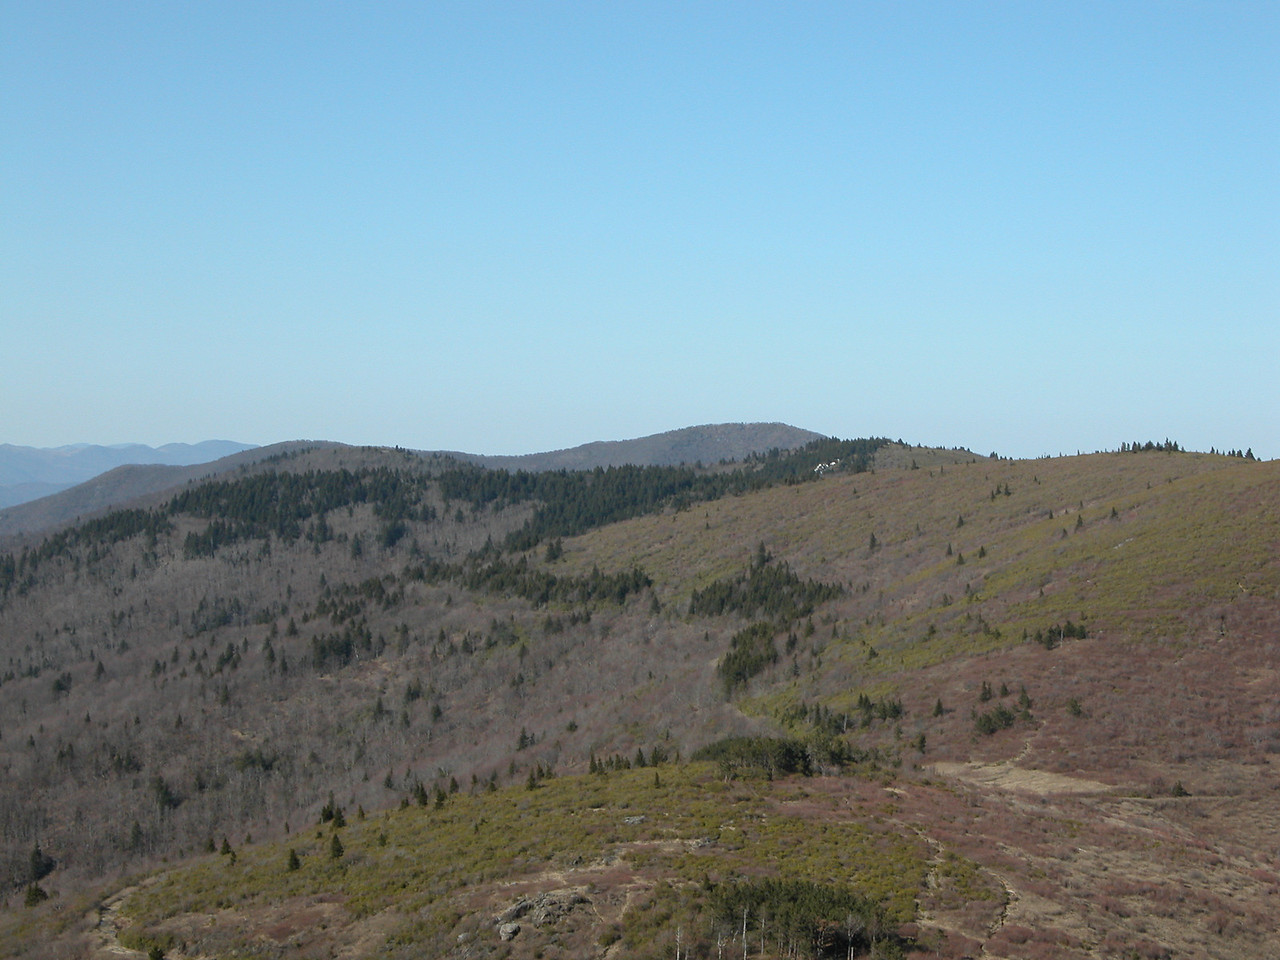 Looking N. to Shining Rock (white quartz outcrop in trees) from Tennent Mtn. Cold Mtn. behind Shining Rock<br /> another part of failed attempt at producing a pano from the summit of Tennent